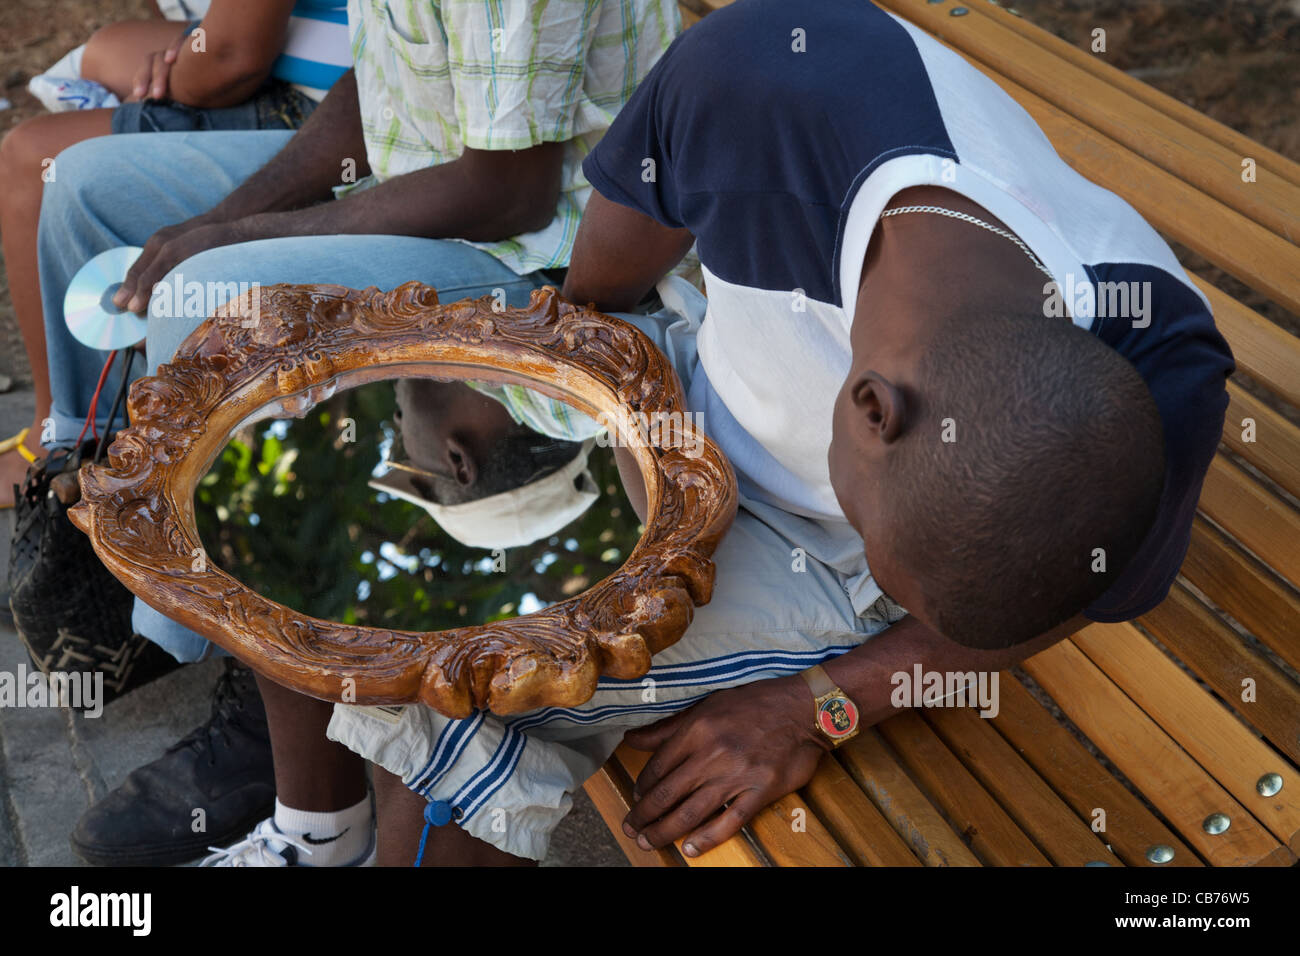 A young man checks his recent acquisition, a mirror, Havana (La Habana), Cuba - Stock Image